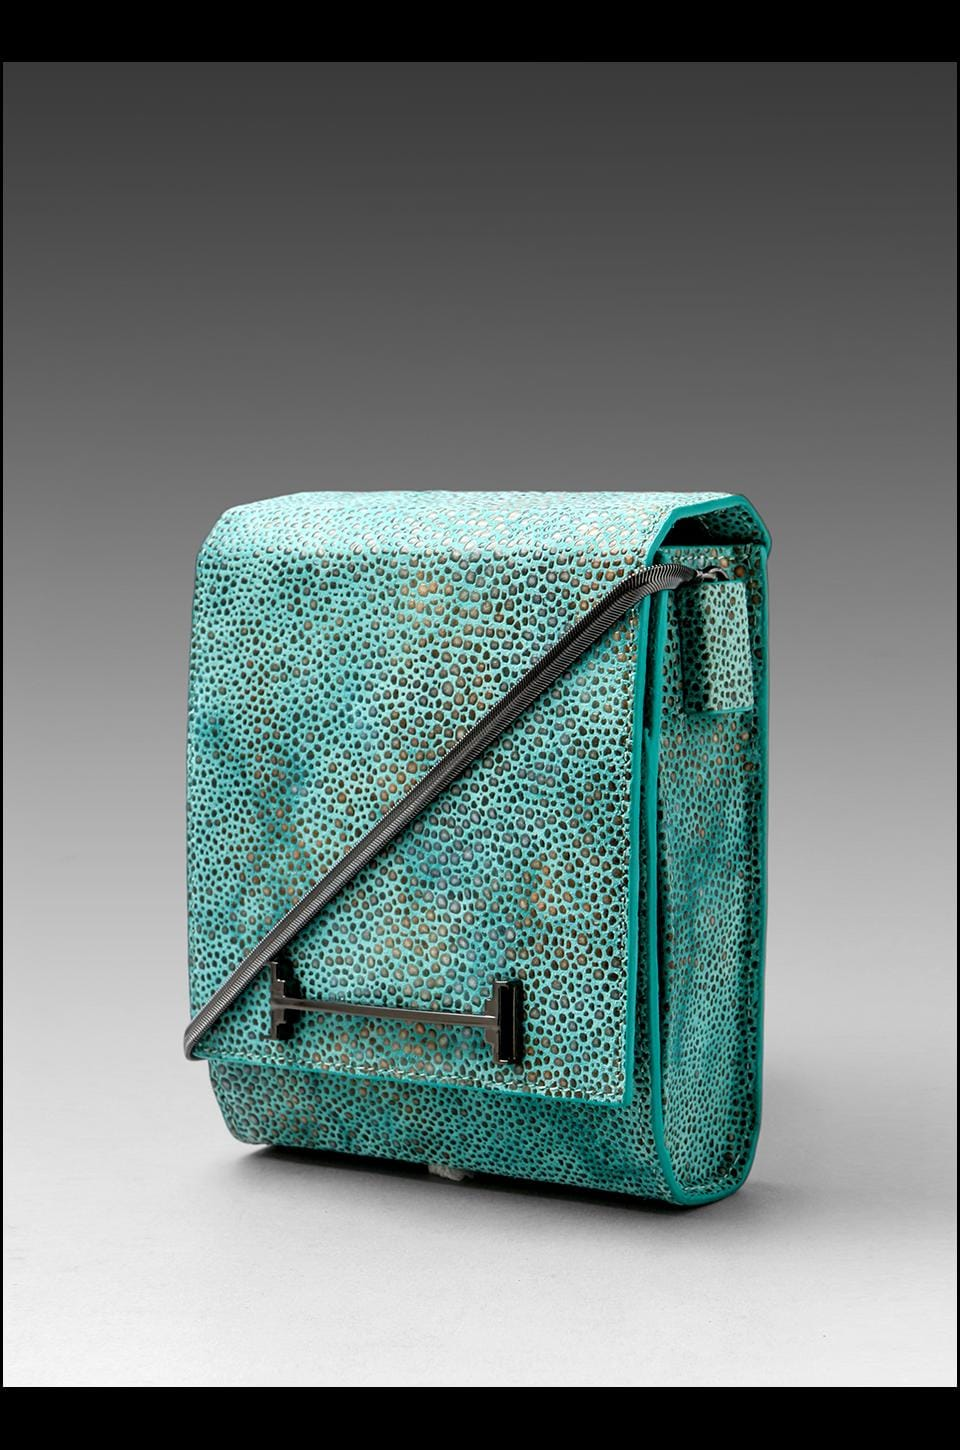 Halston Heritage Small Box Shoulder Bag in Seafoam